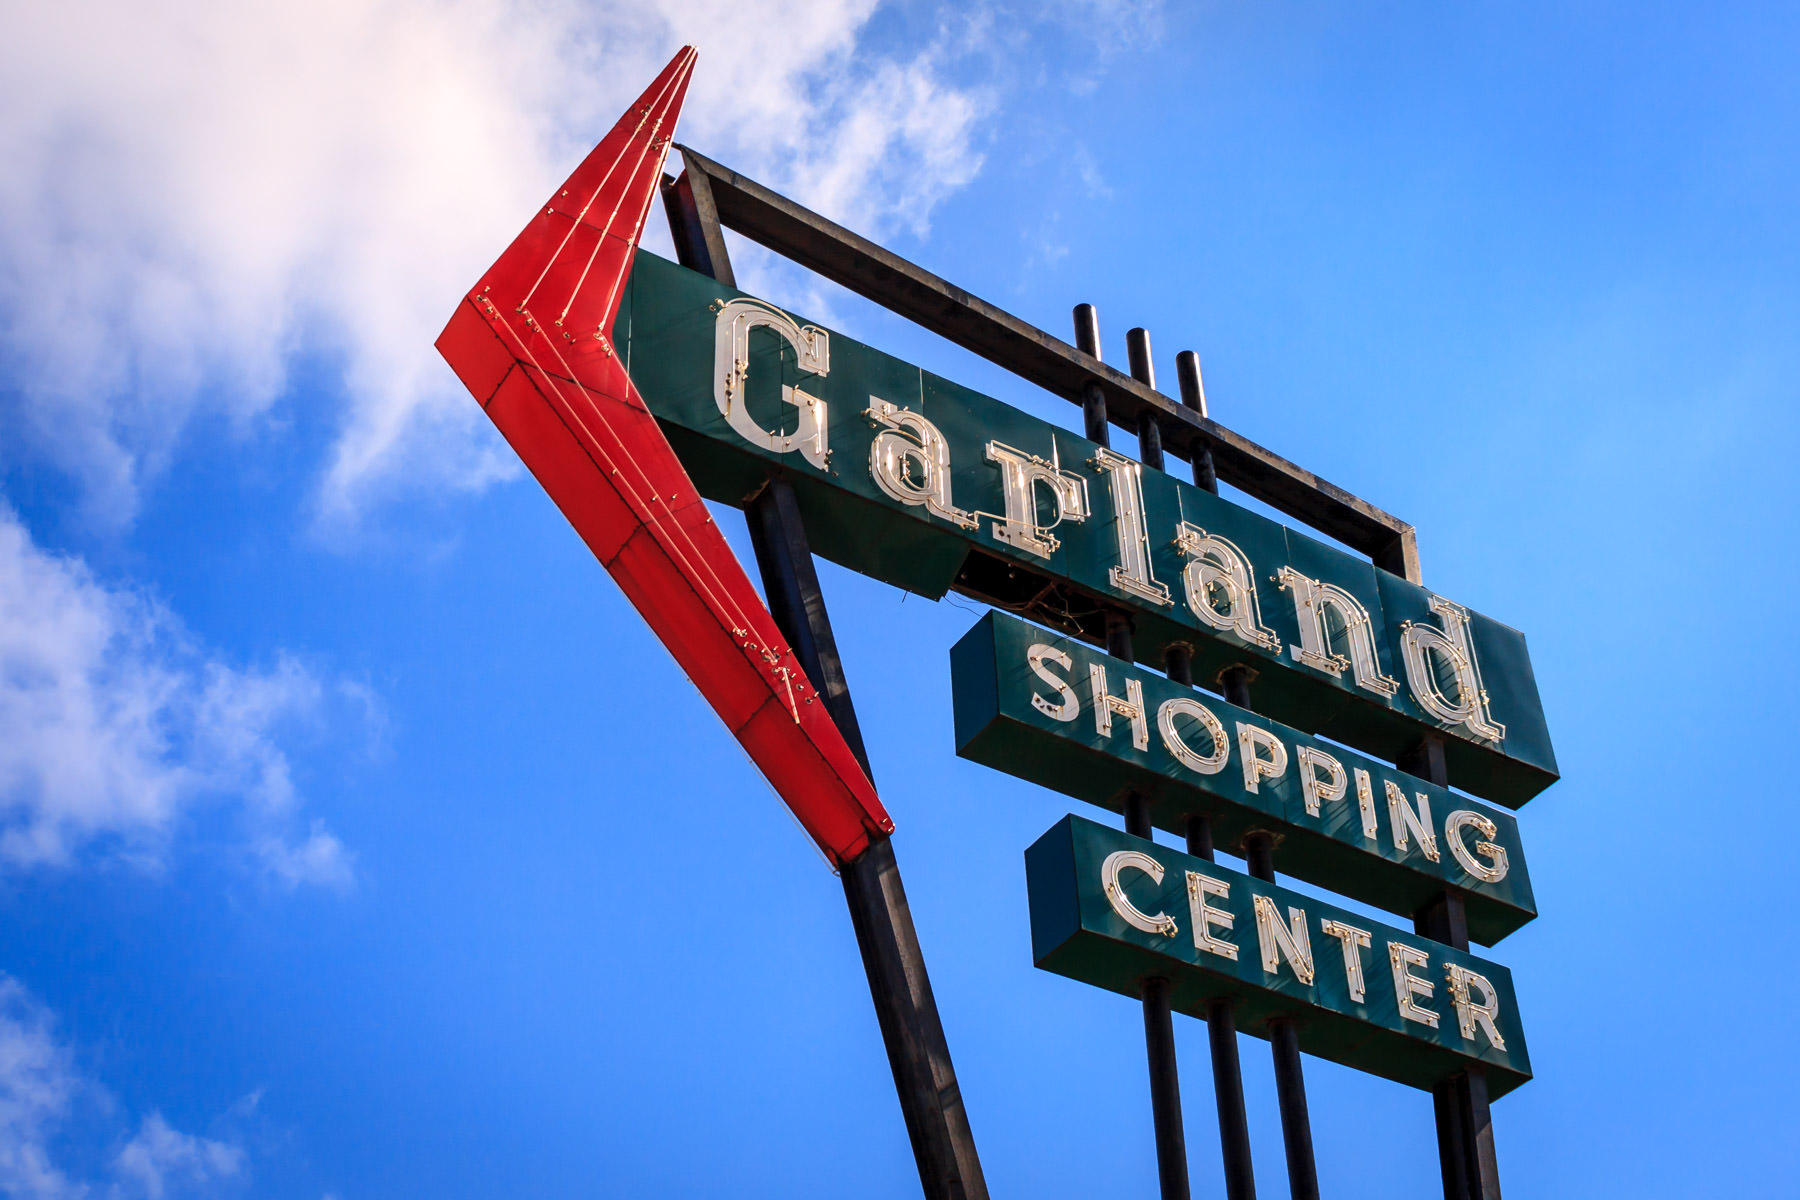 This sign is all that remains of the Garland Shopping Center, Garland, Texas.